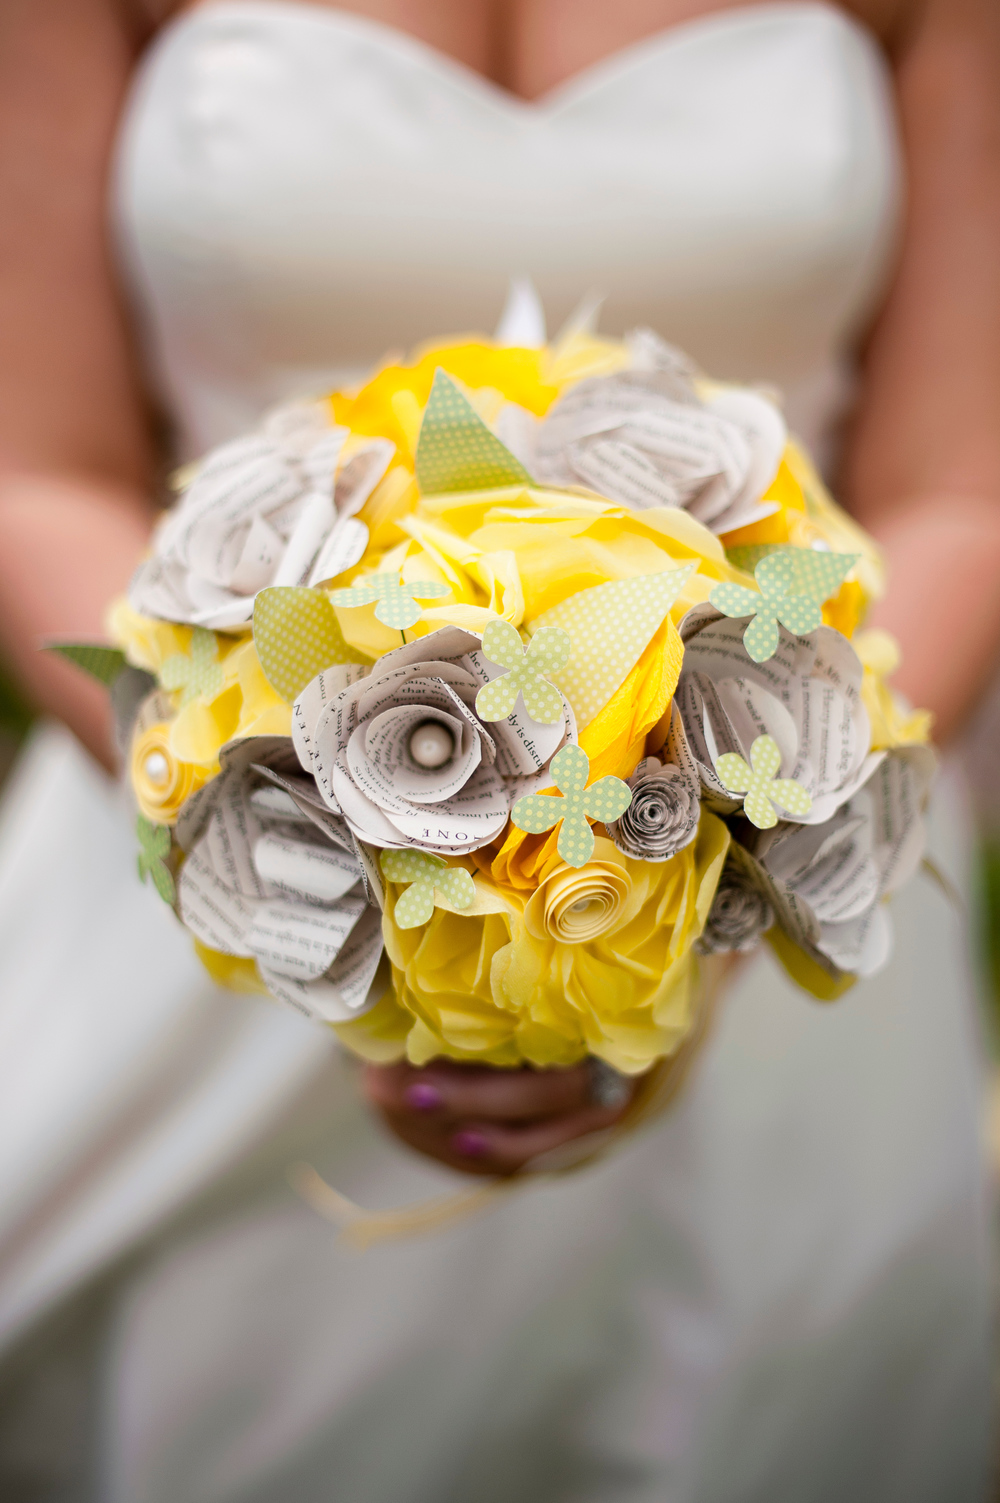 Flowers from the Garden was award Seattle Bride Magazine Best of 2013 Best Bouquet Alternative.  Michelle Feingold with Minerva Photography